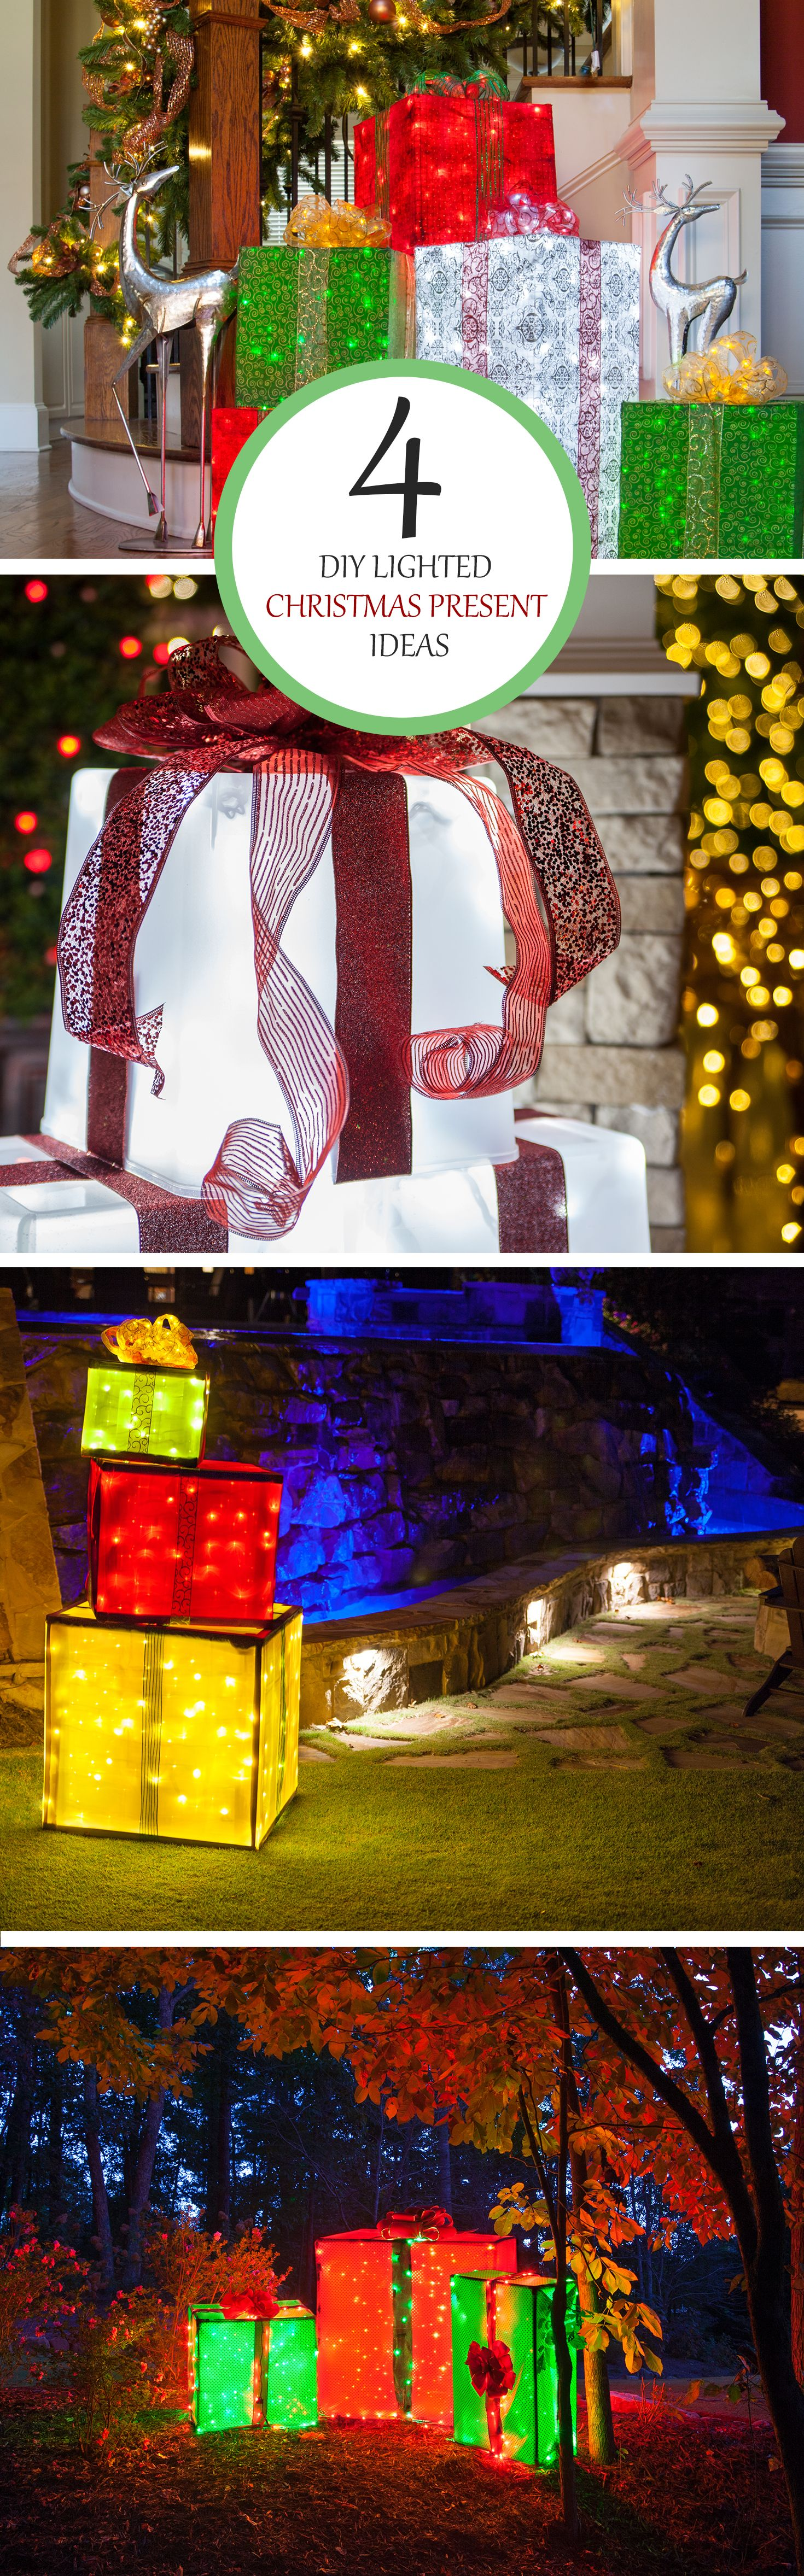 Lighted christmas duck outdoor yard decor - Create Lighted Gift Boxes To Use As Outdoor Christmas Yard Decorations By Using Basic Materials